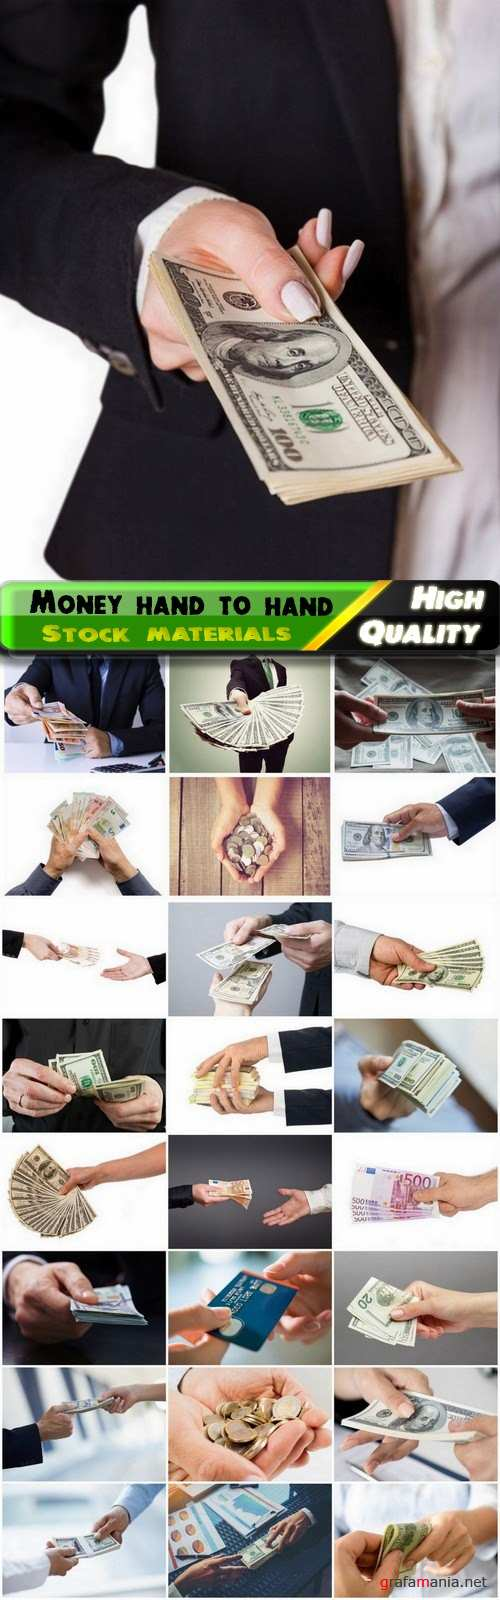 Business concept with money hand to hand - 25 HQ Jpg